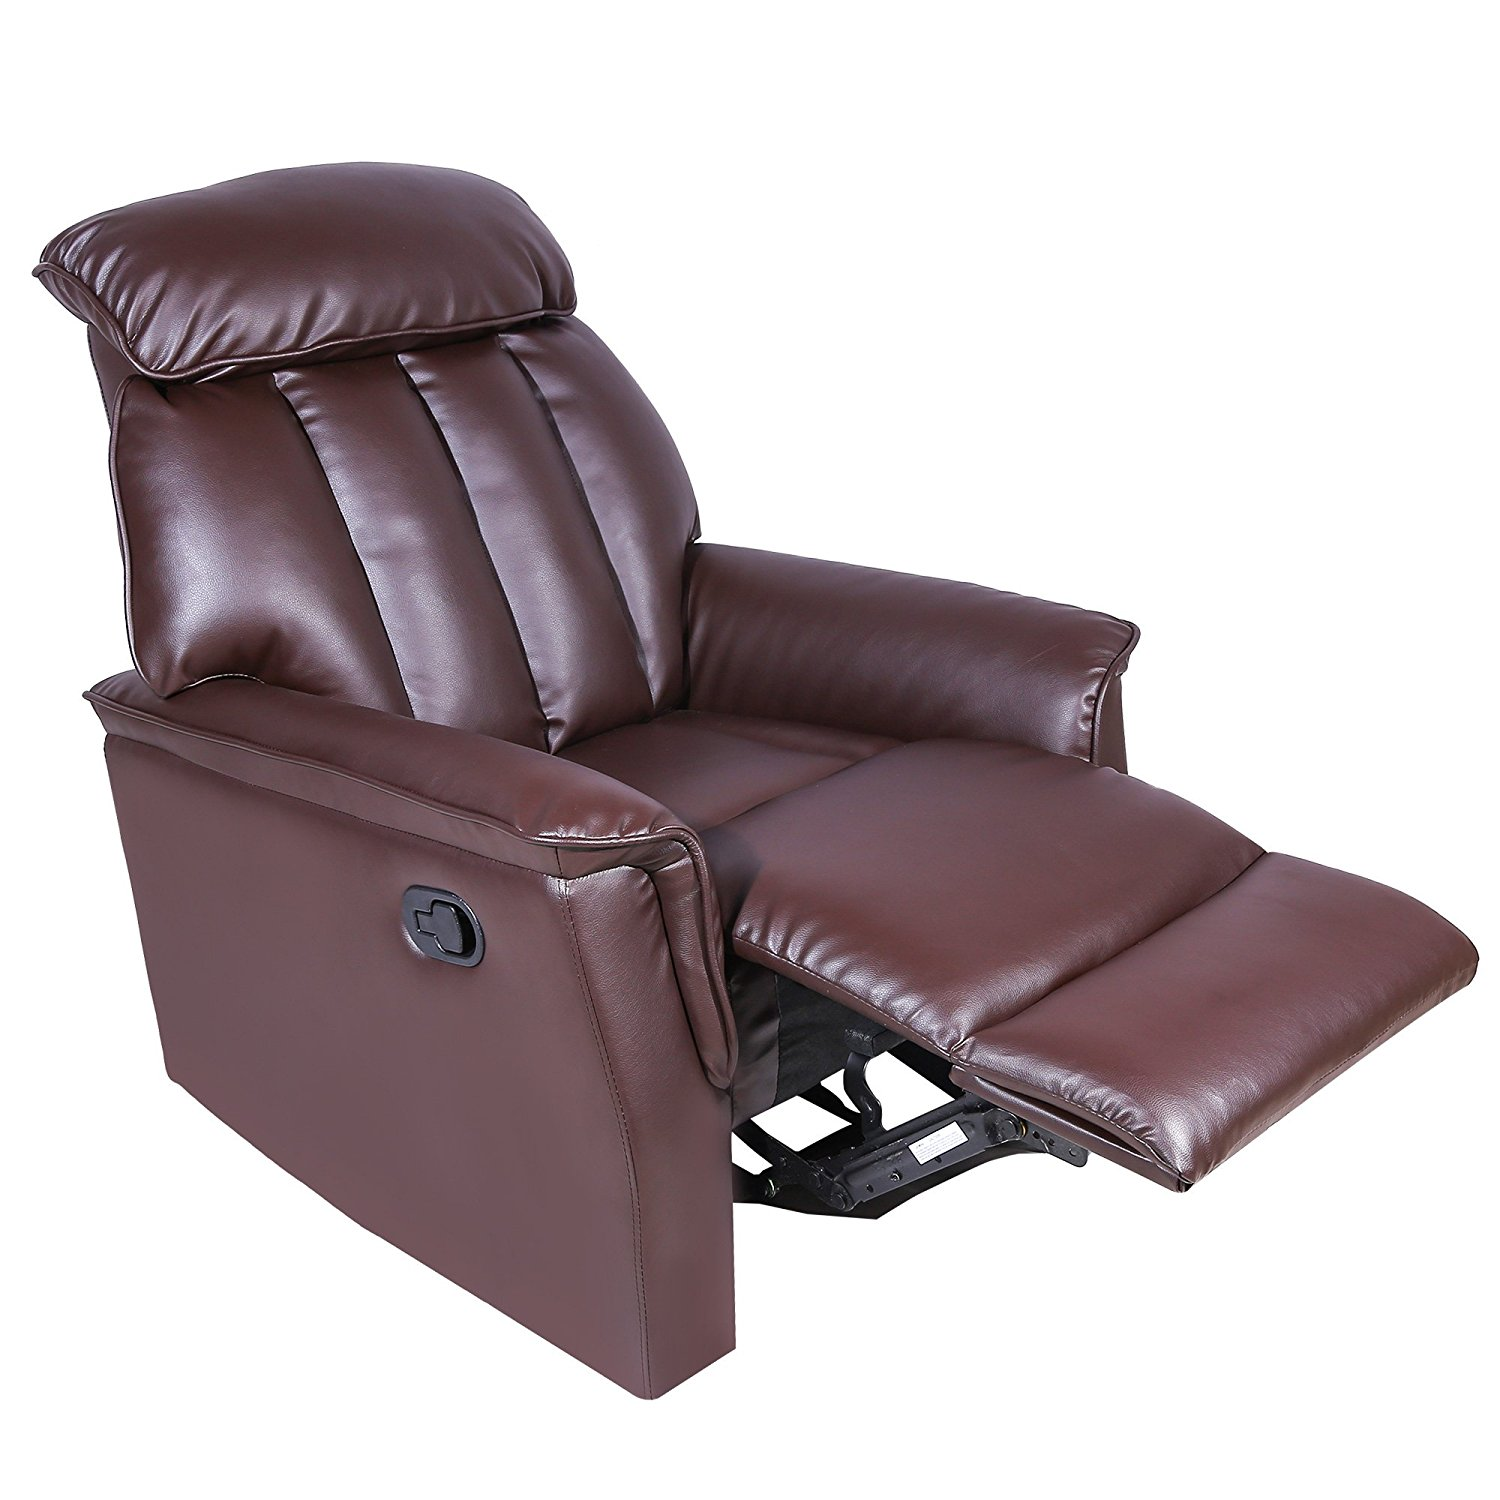 Harper&Bright Designs Recliner Ergonomic Adjustable Recliner Sofa Chair with PU Leather (Brown) (Brown)